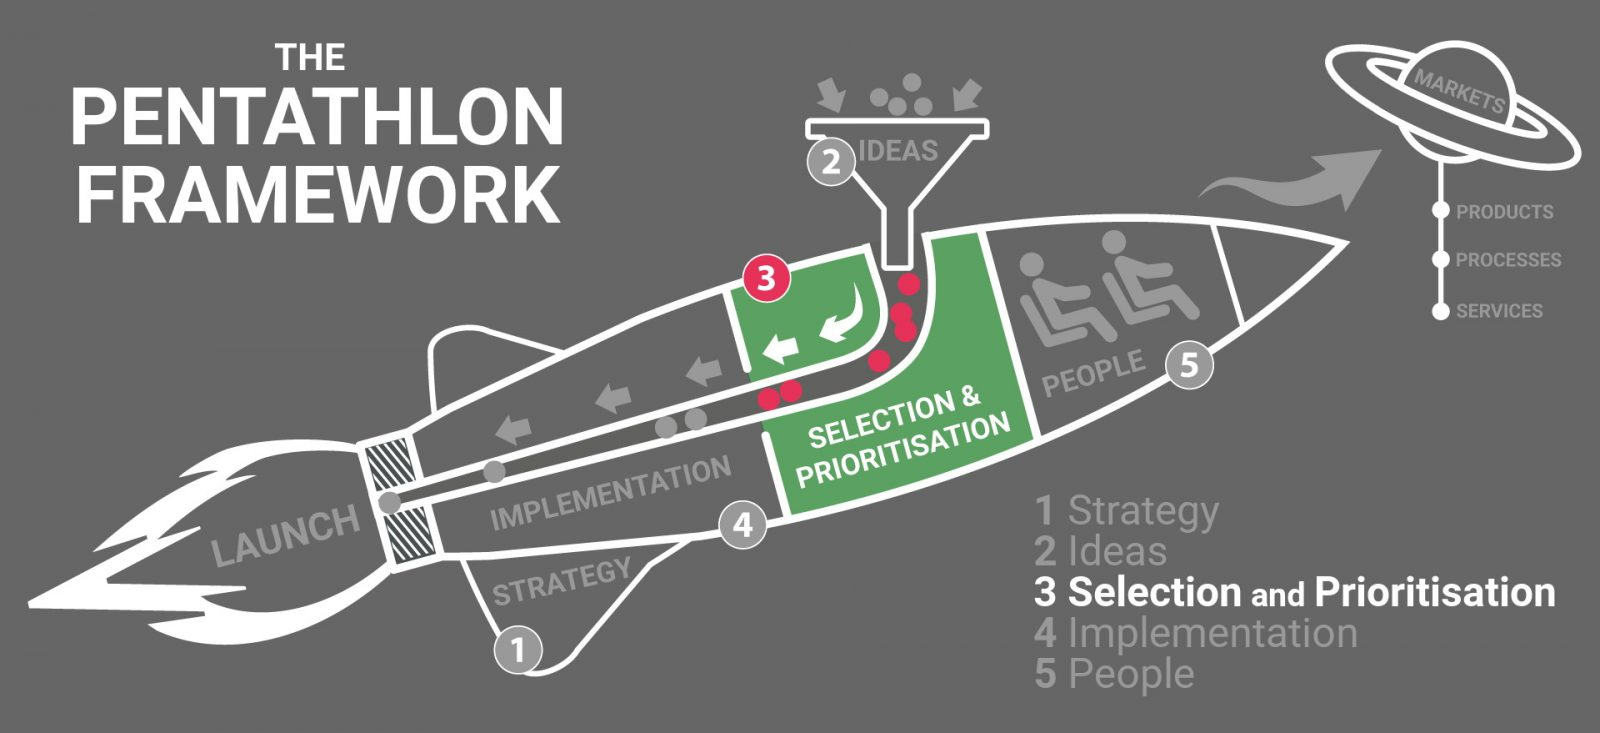 The Pentathlon Framework